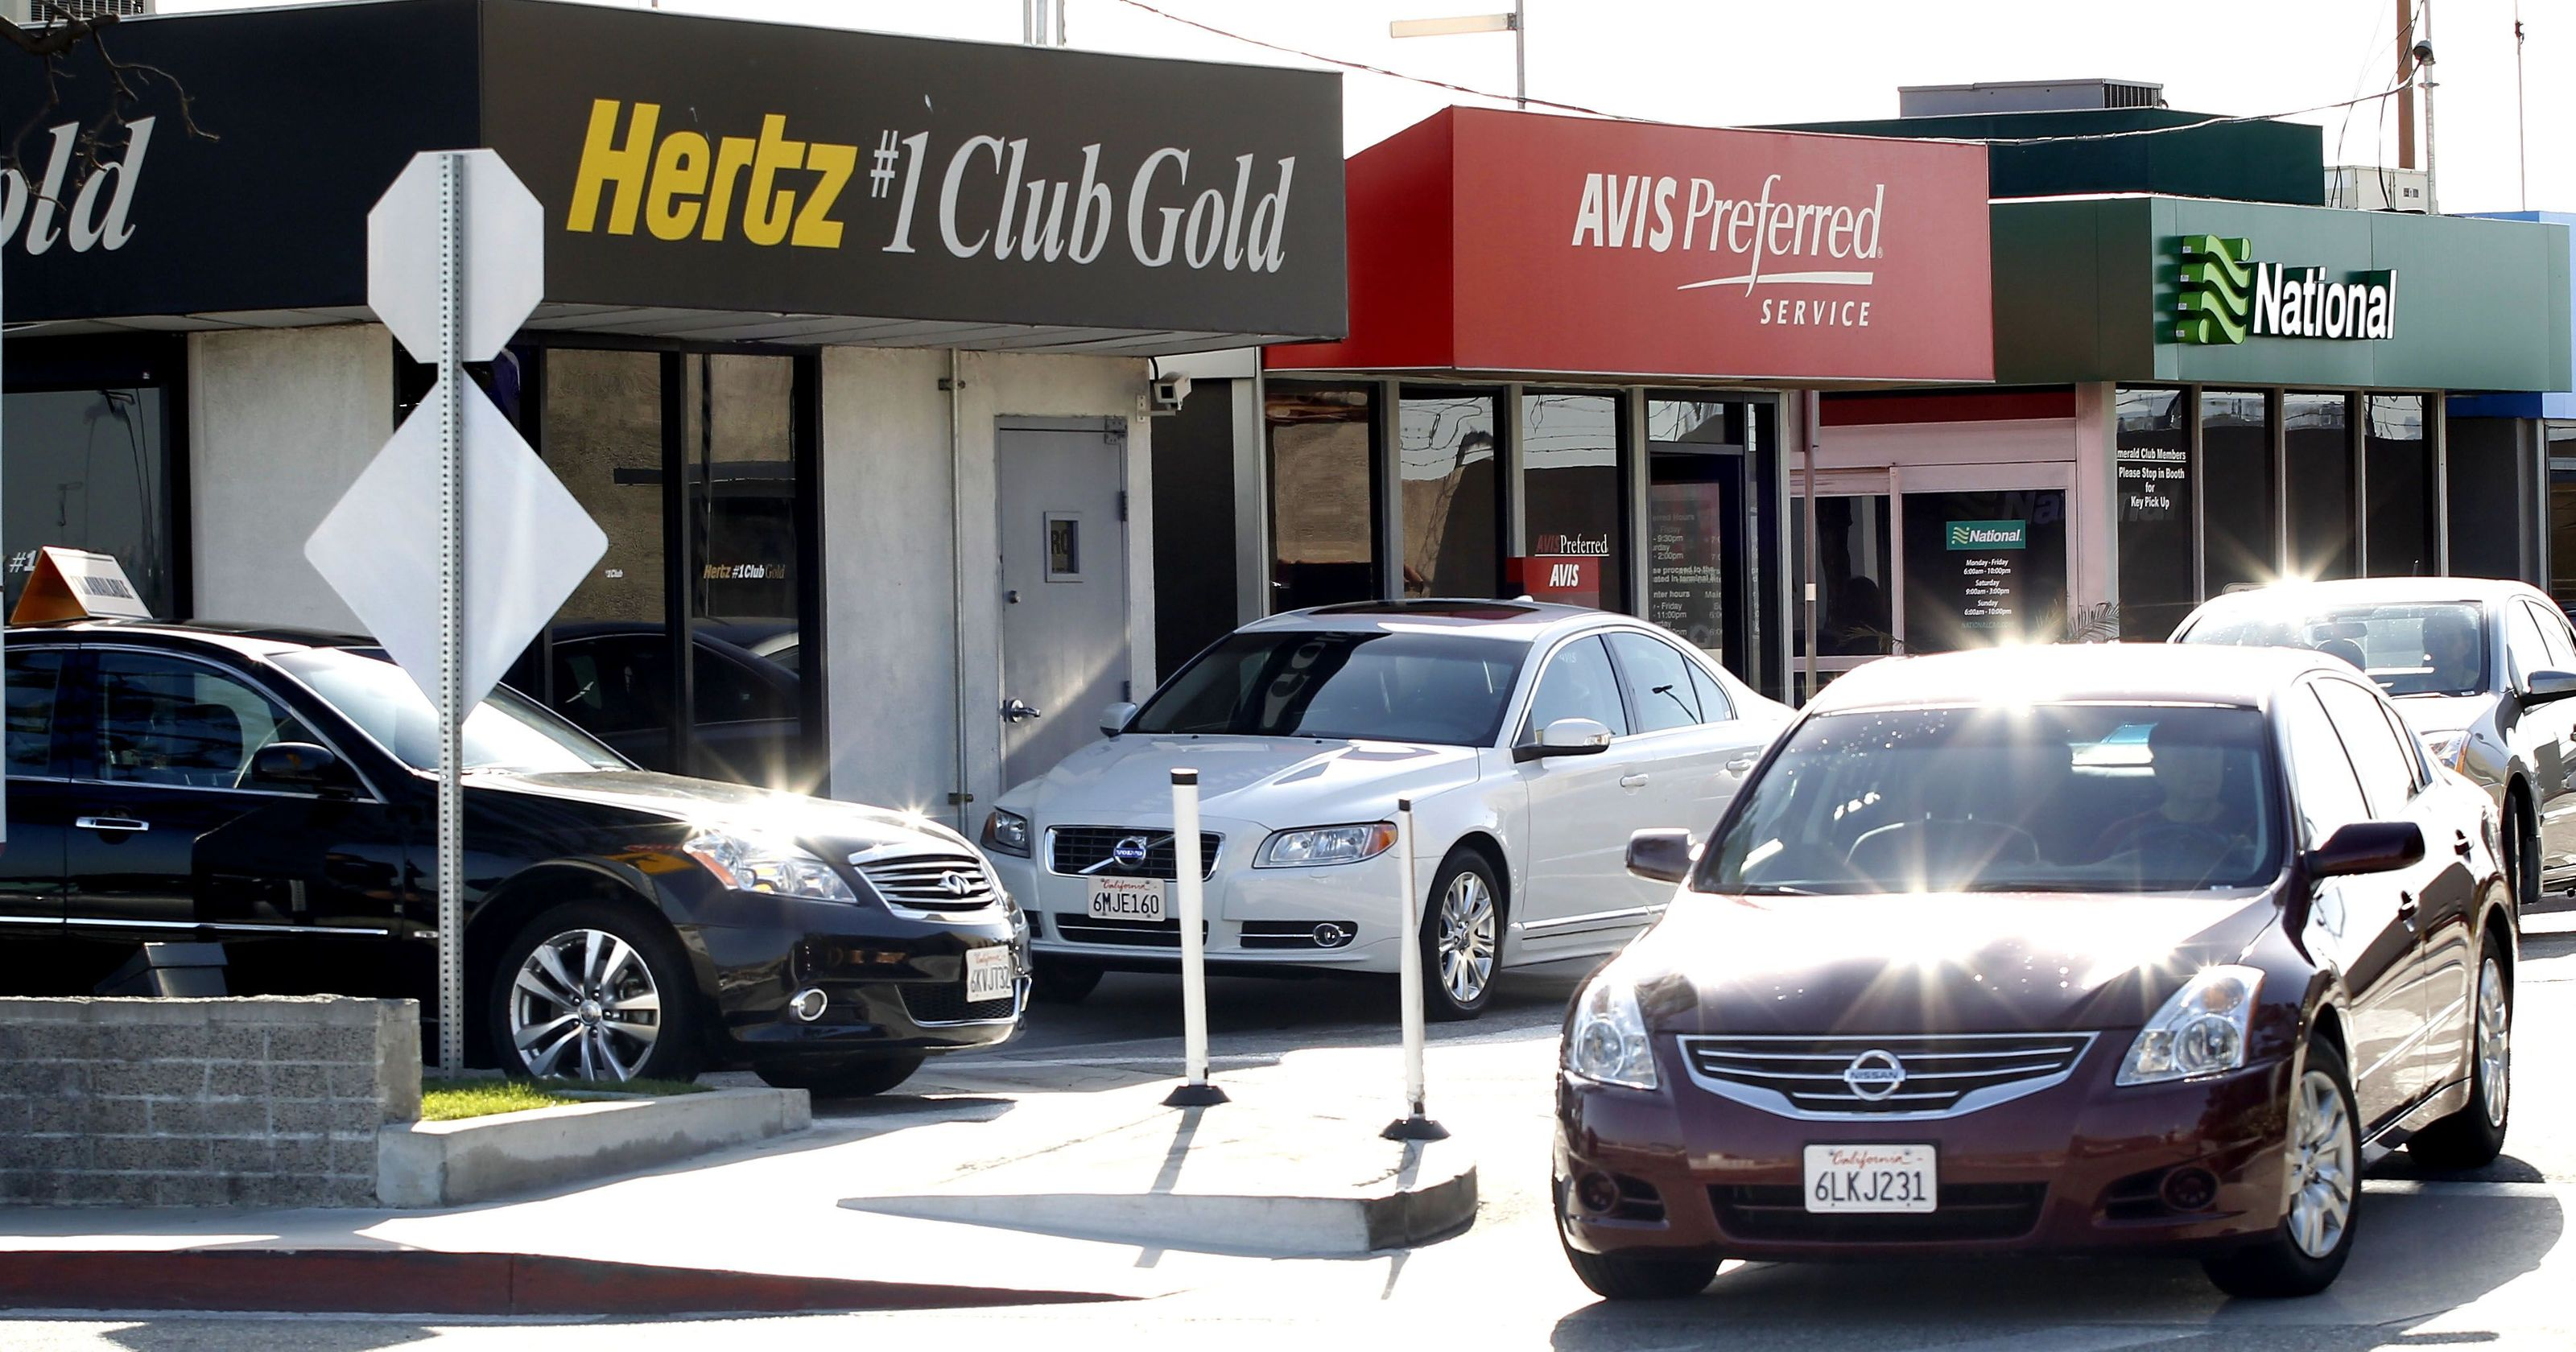 Hertz Cars for Sale Near Me Awesome Travel Advice What to Do when they Run Out Of Rental Cars